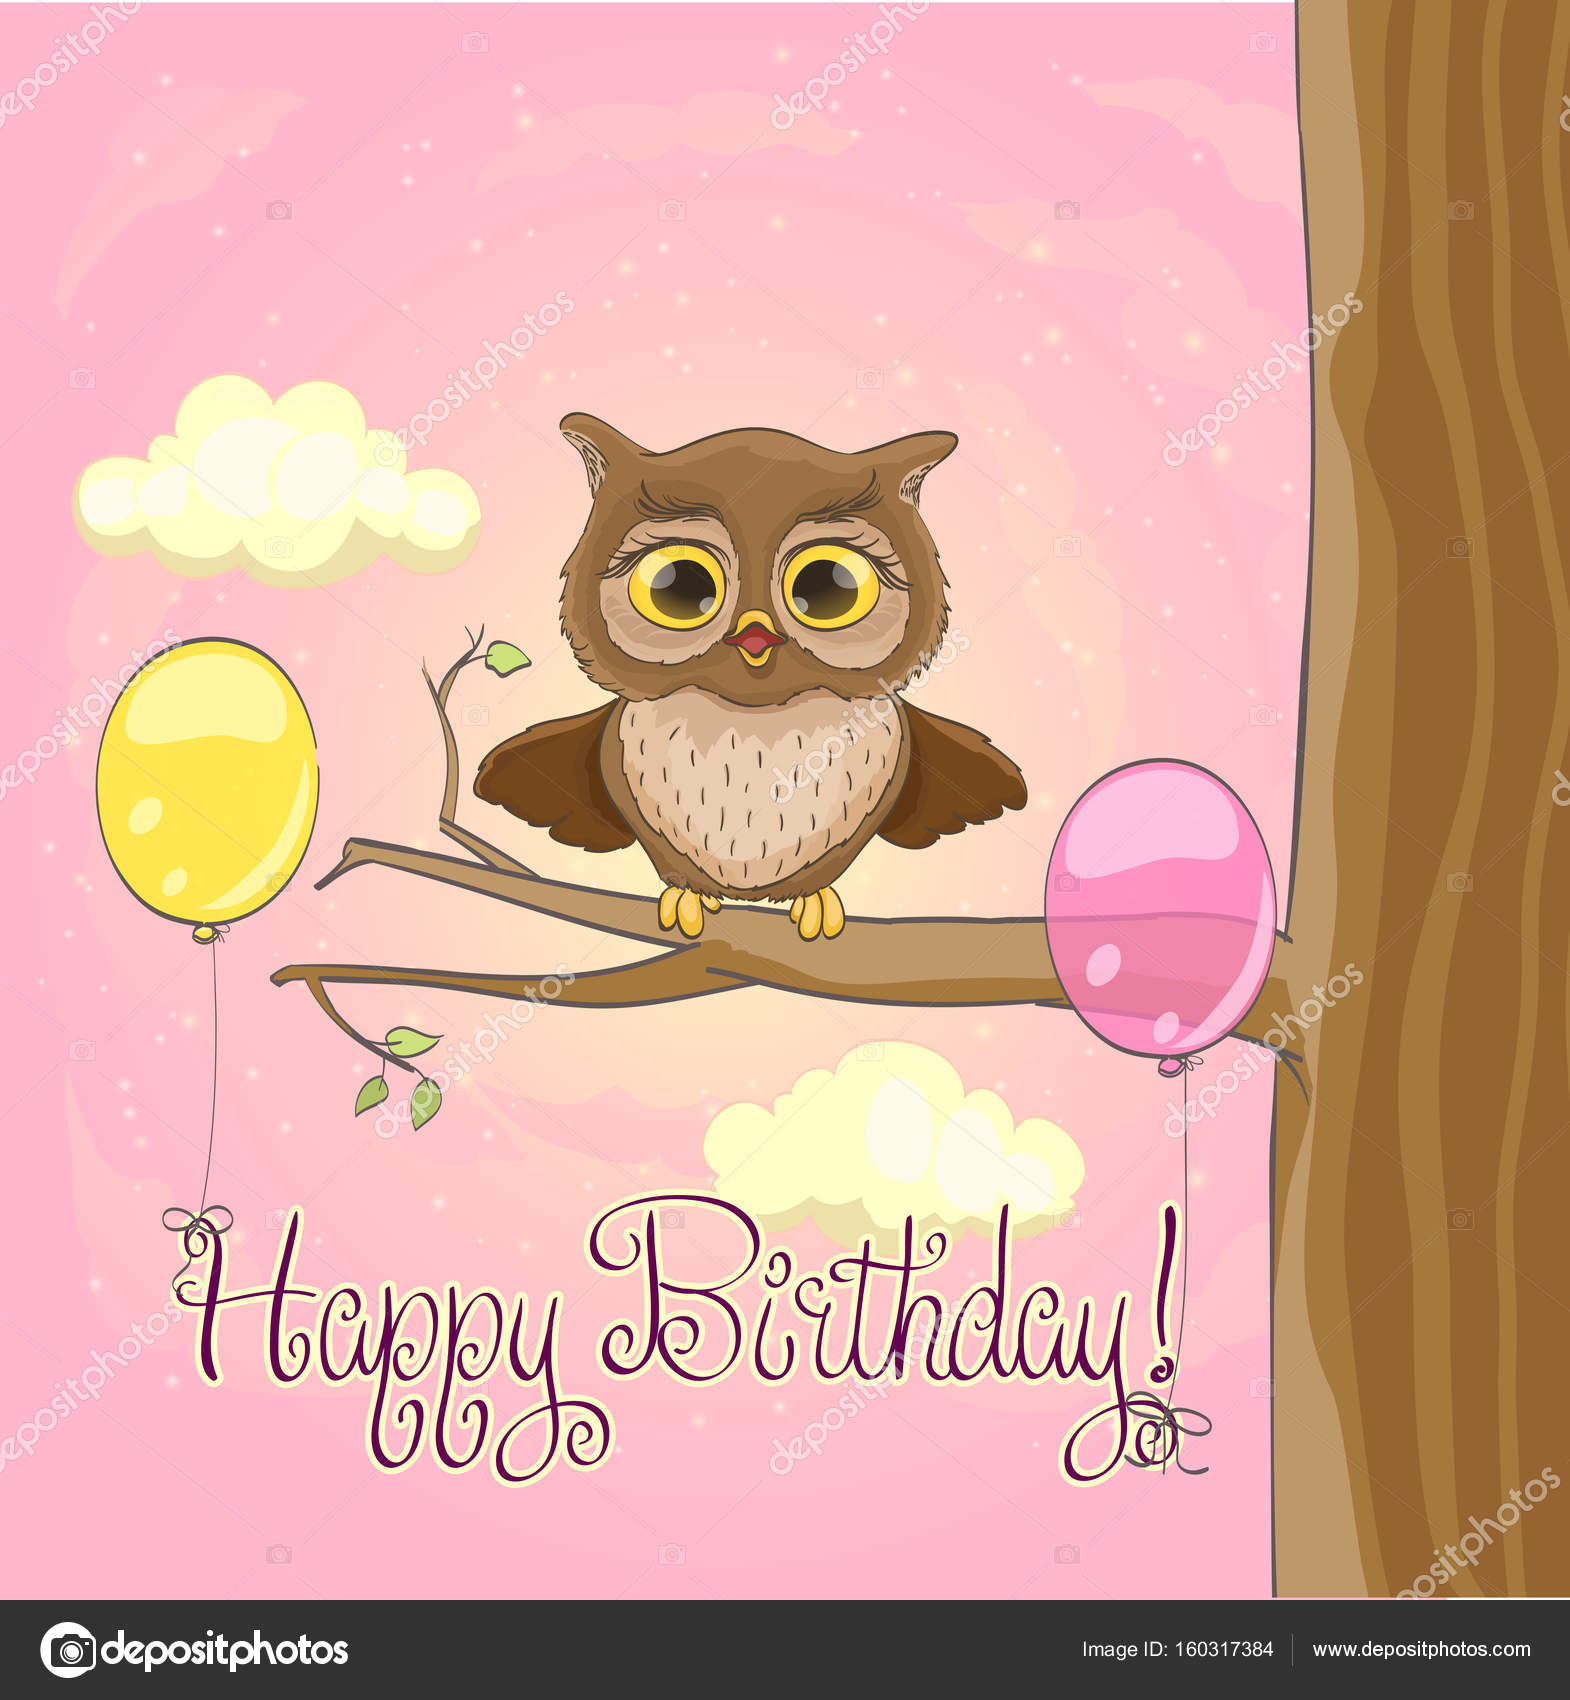 Cute owl balloons pink sky and clouds Happy birthday greeting